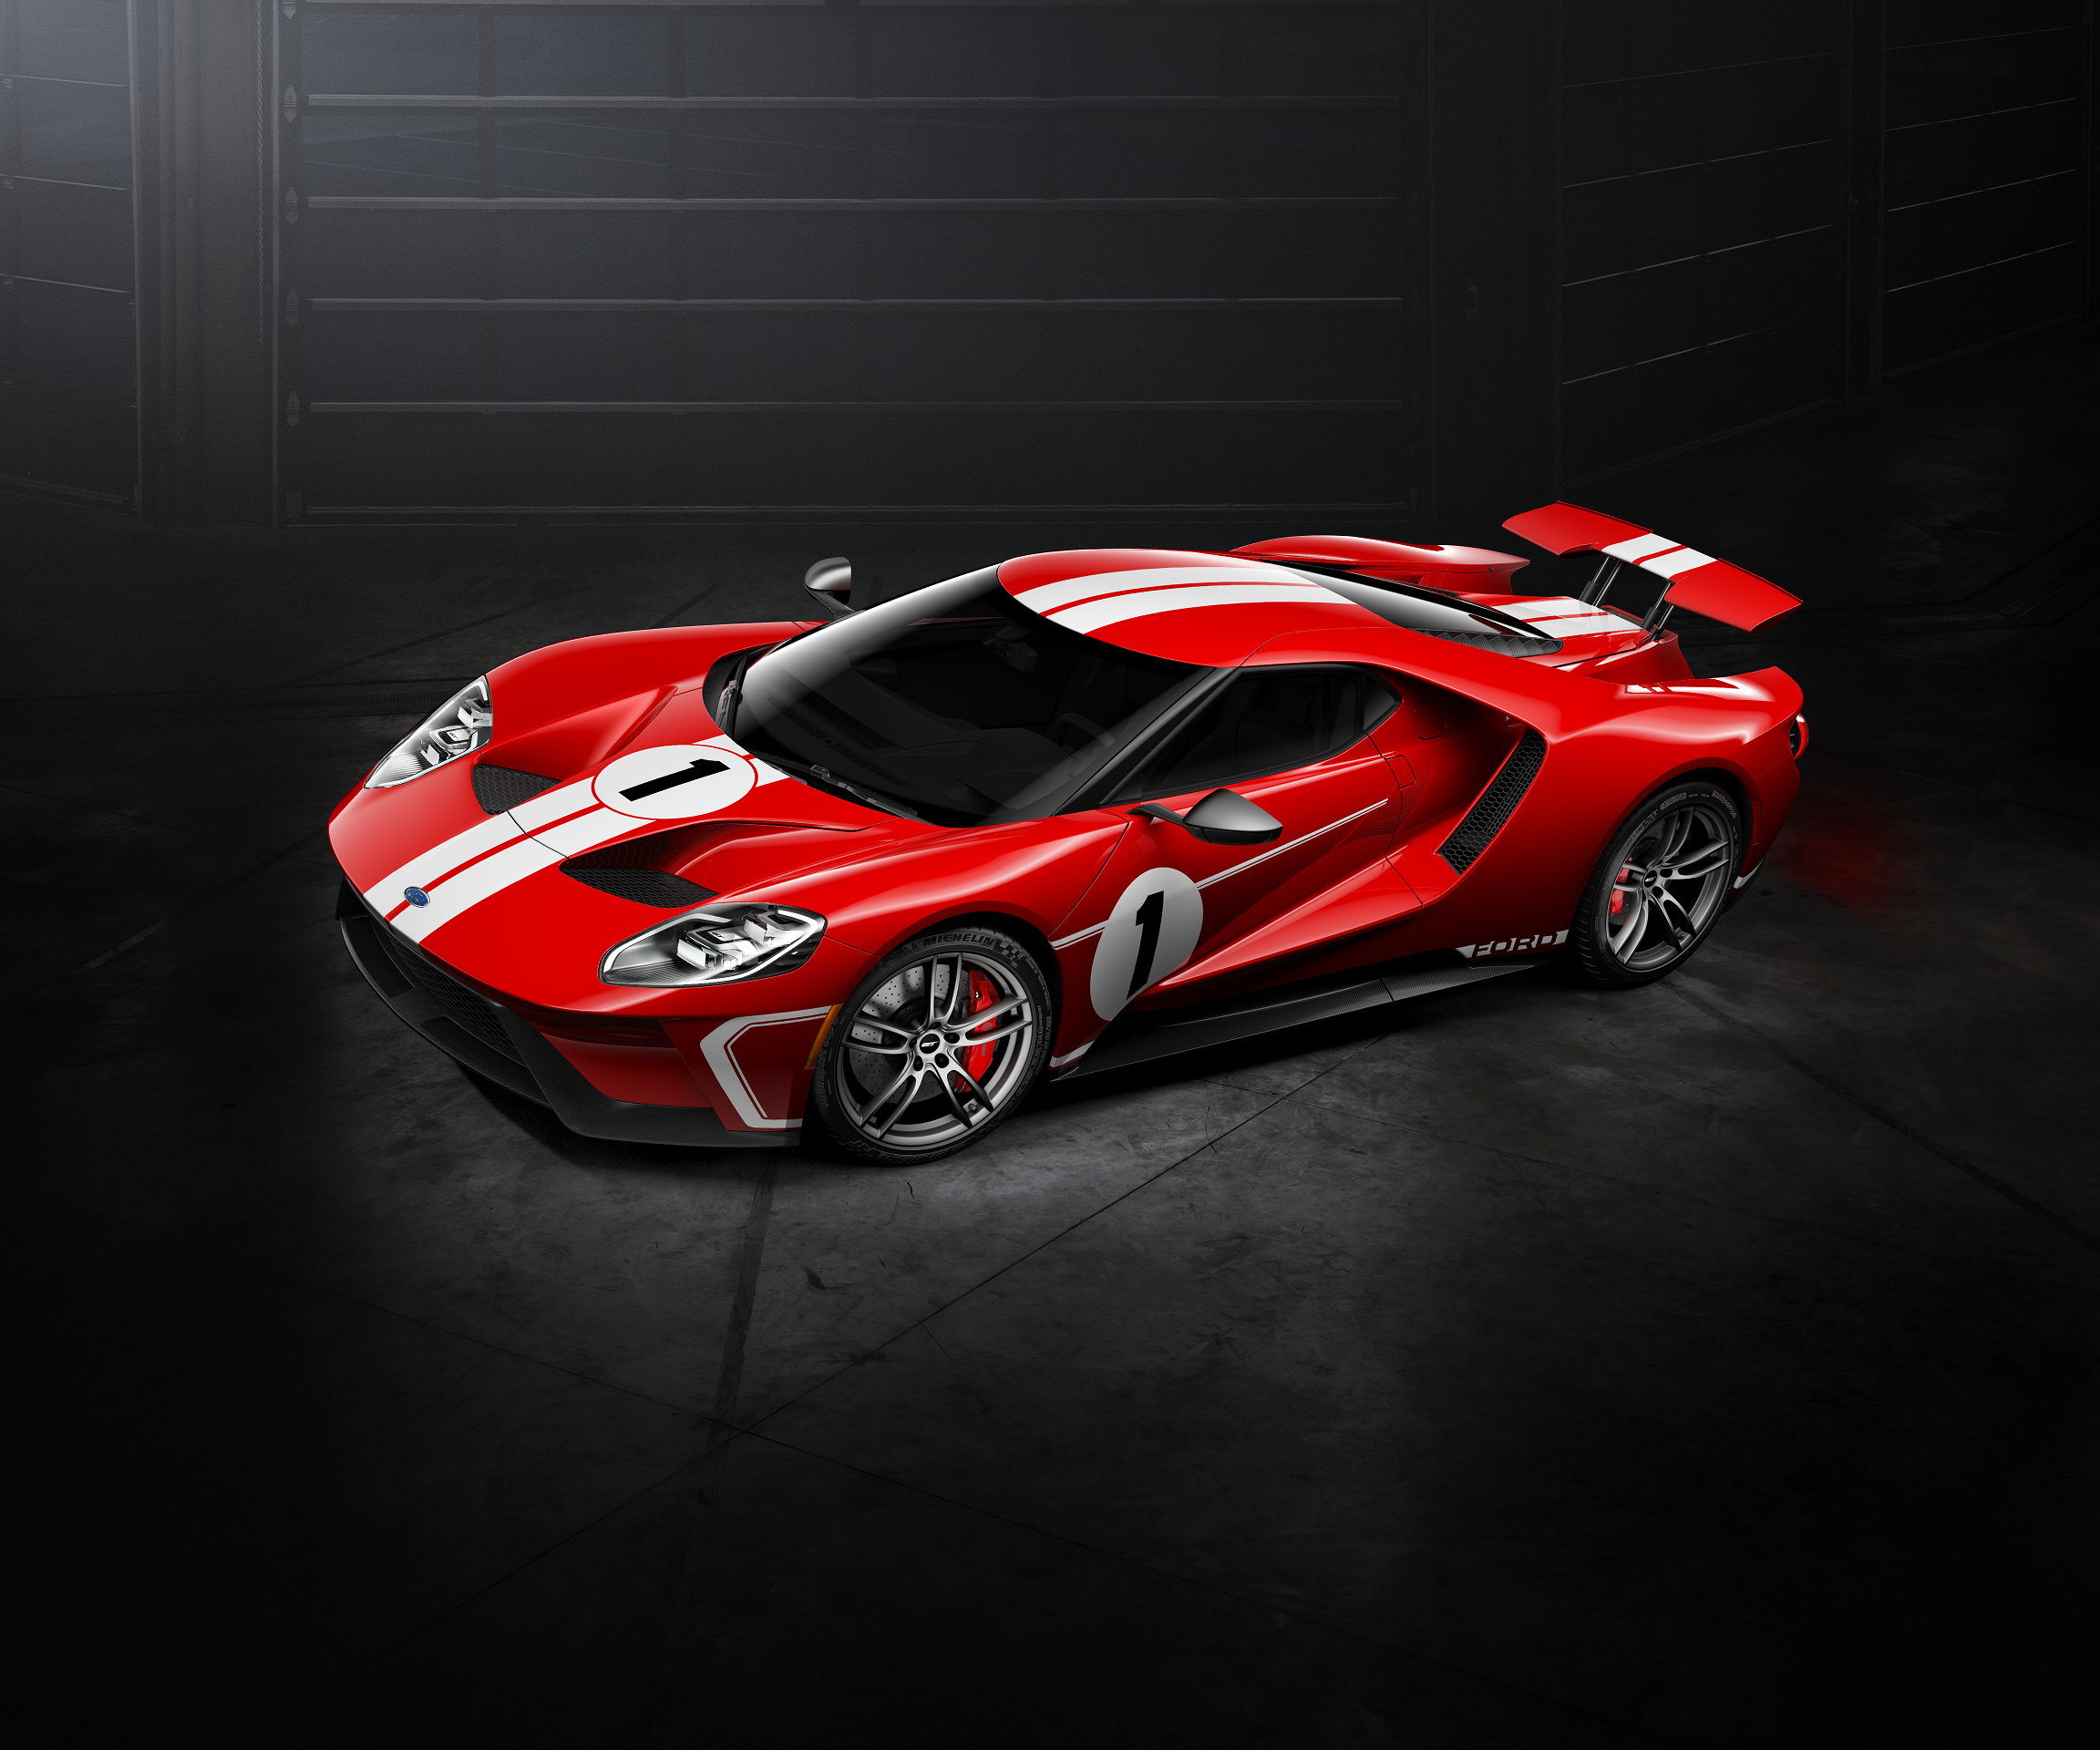 New Supercars: 2018 Ford GT '67 Heritage Edition Announced